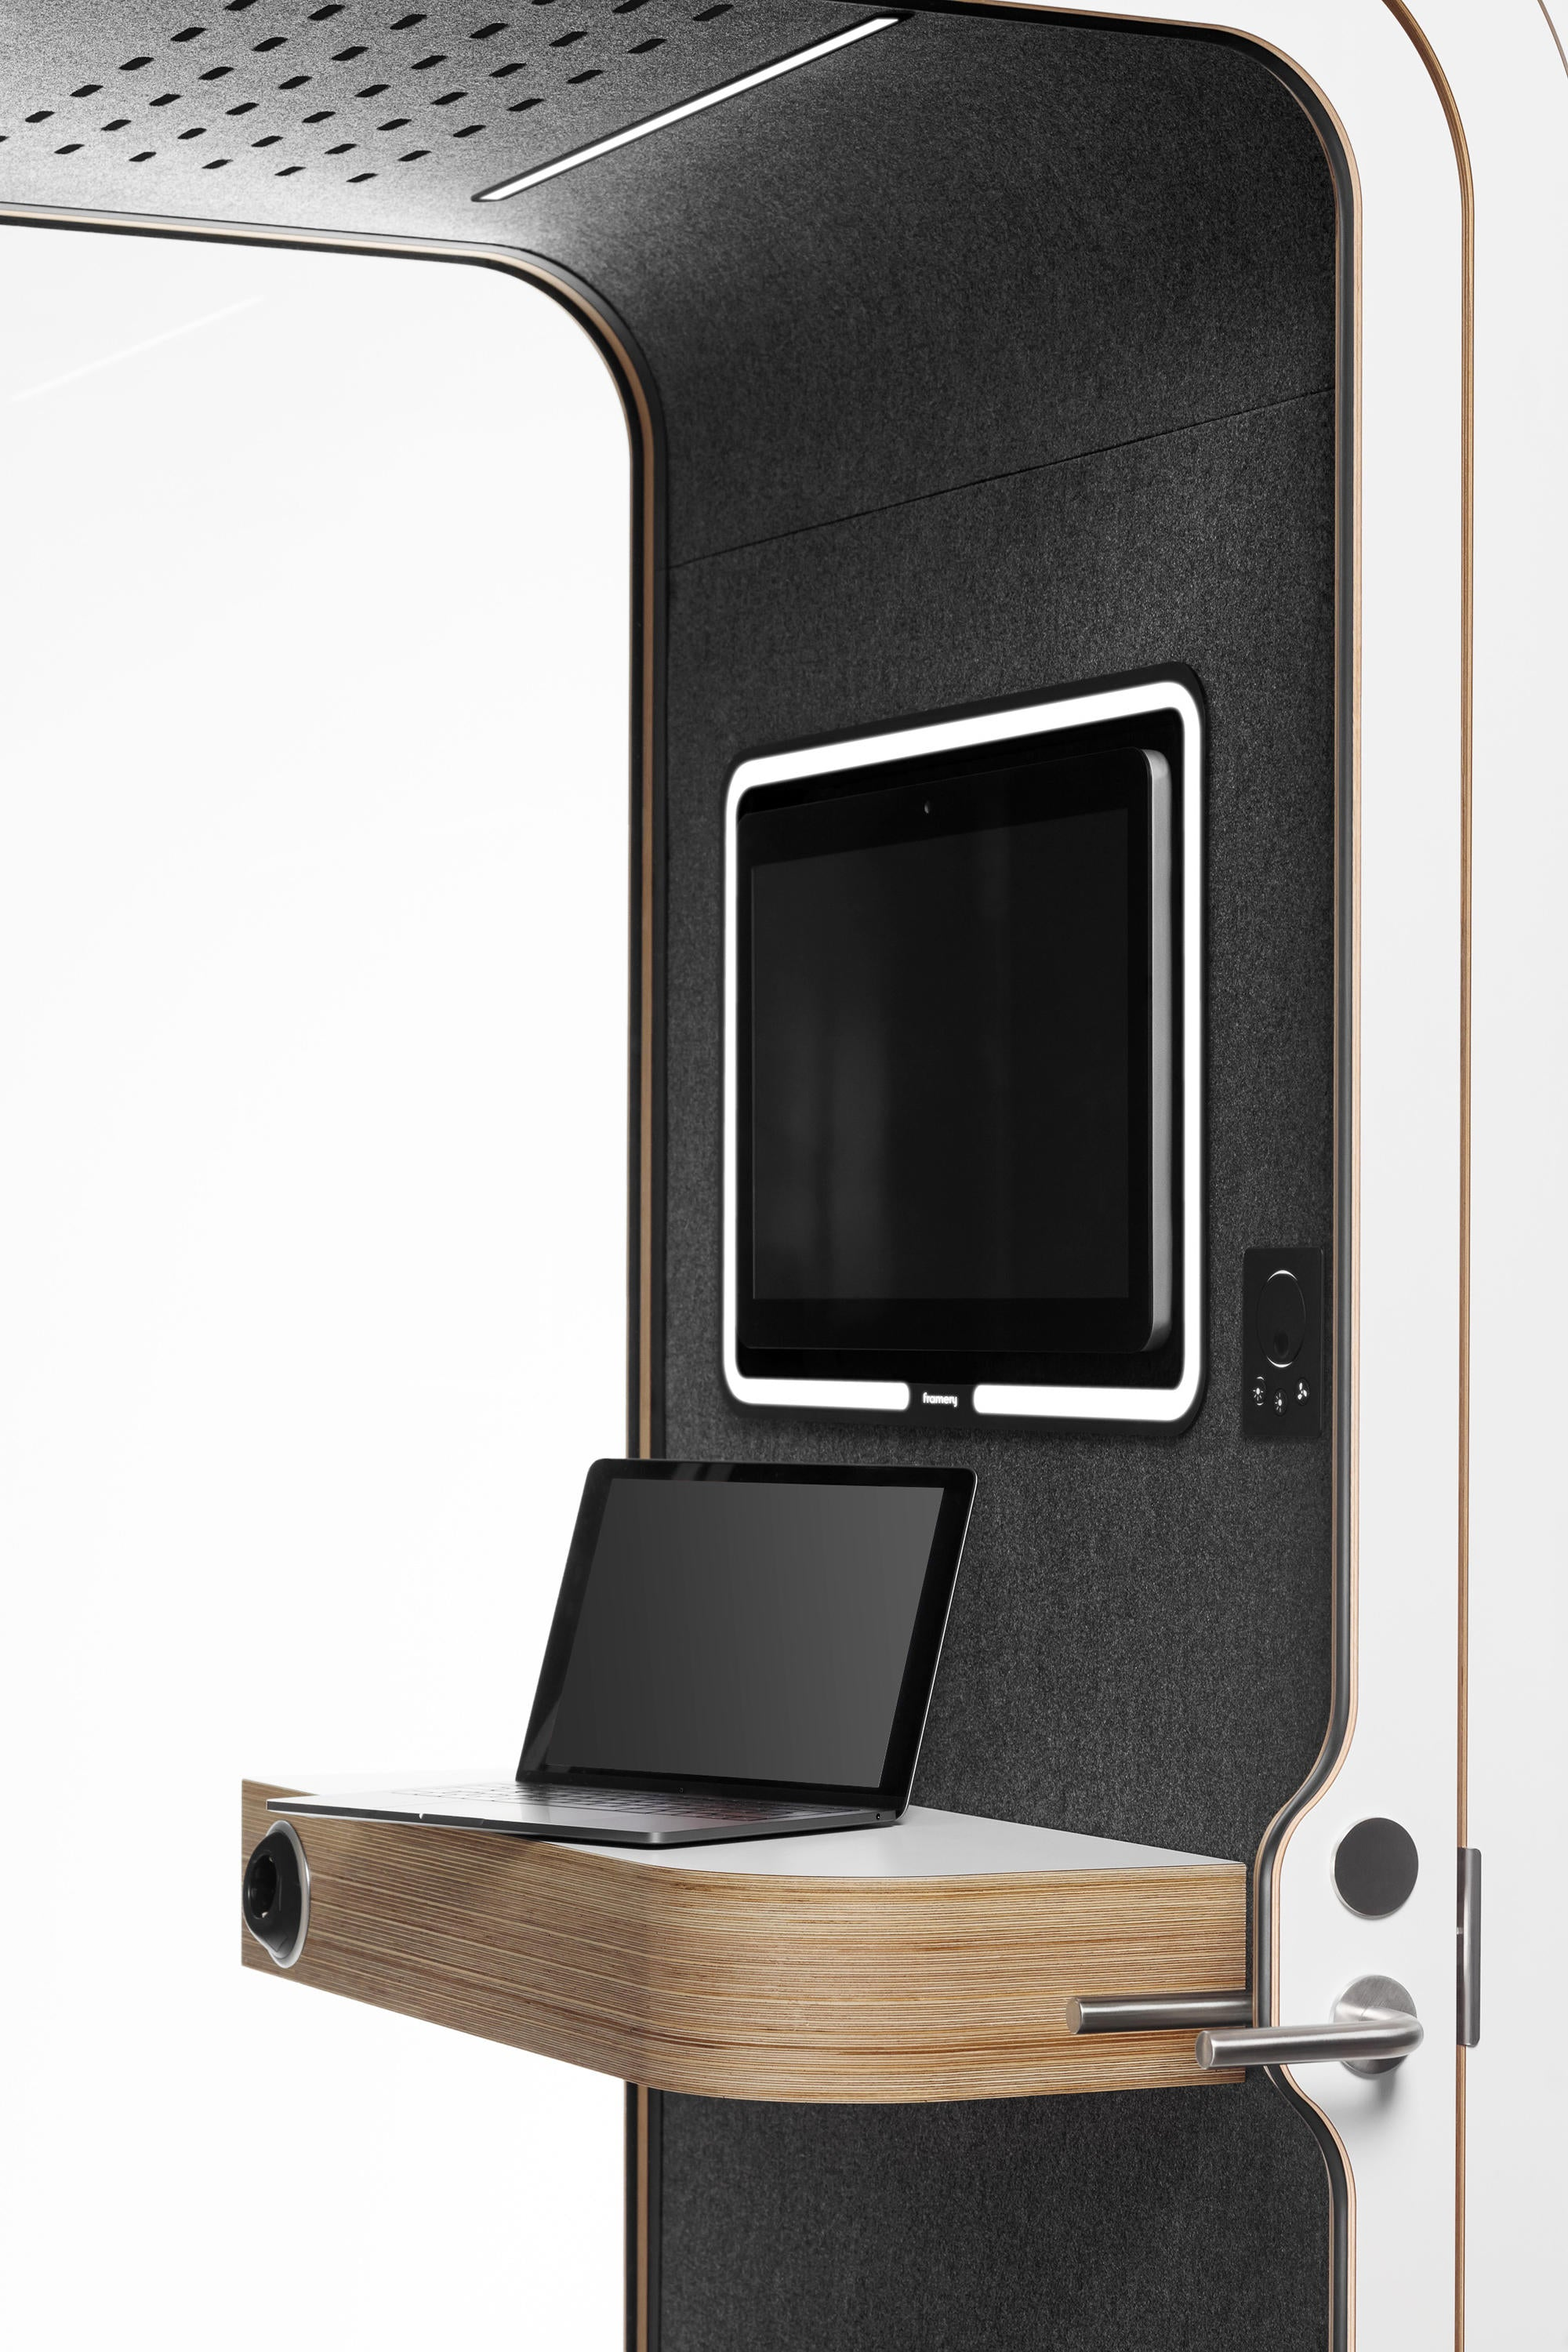 Framery O Phone Booth VCR Ready Meeting Acoustic Pod